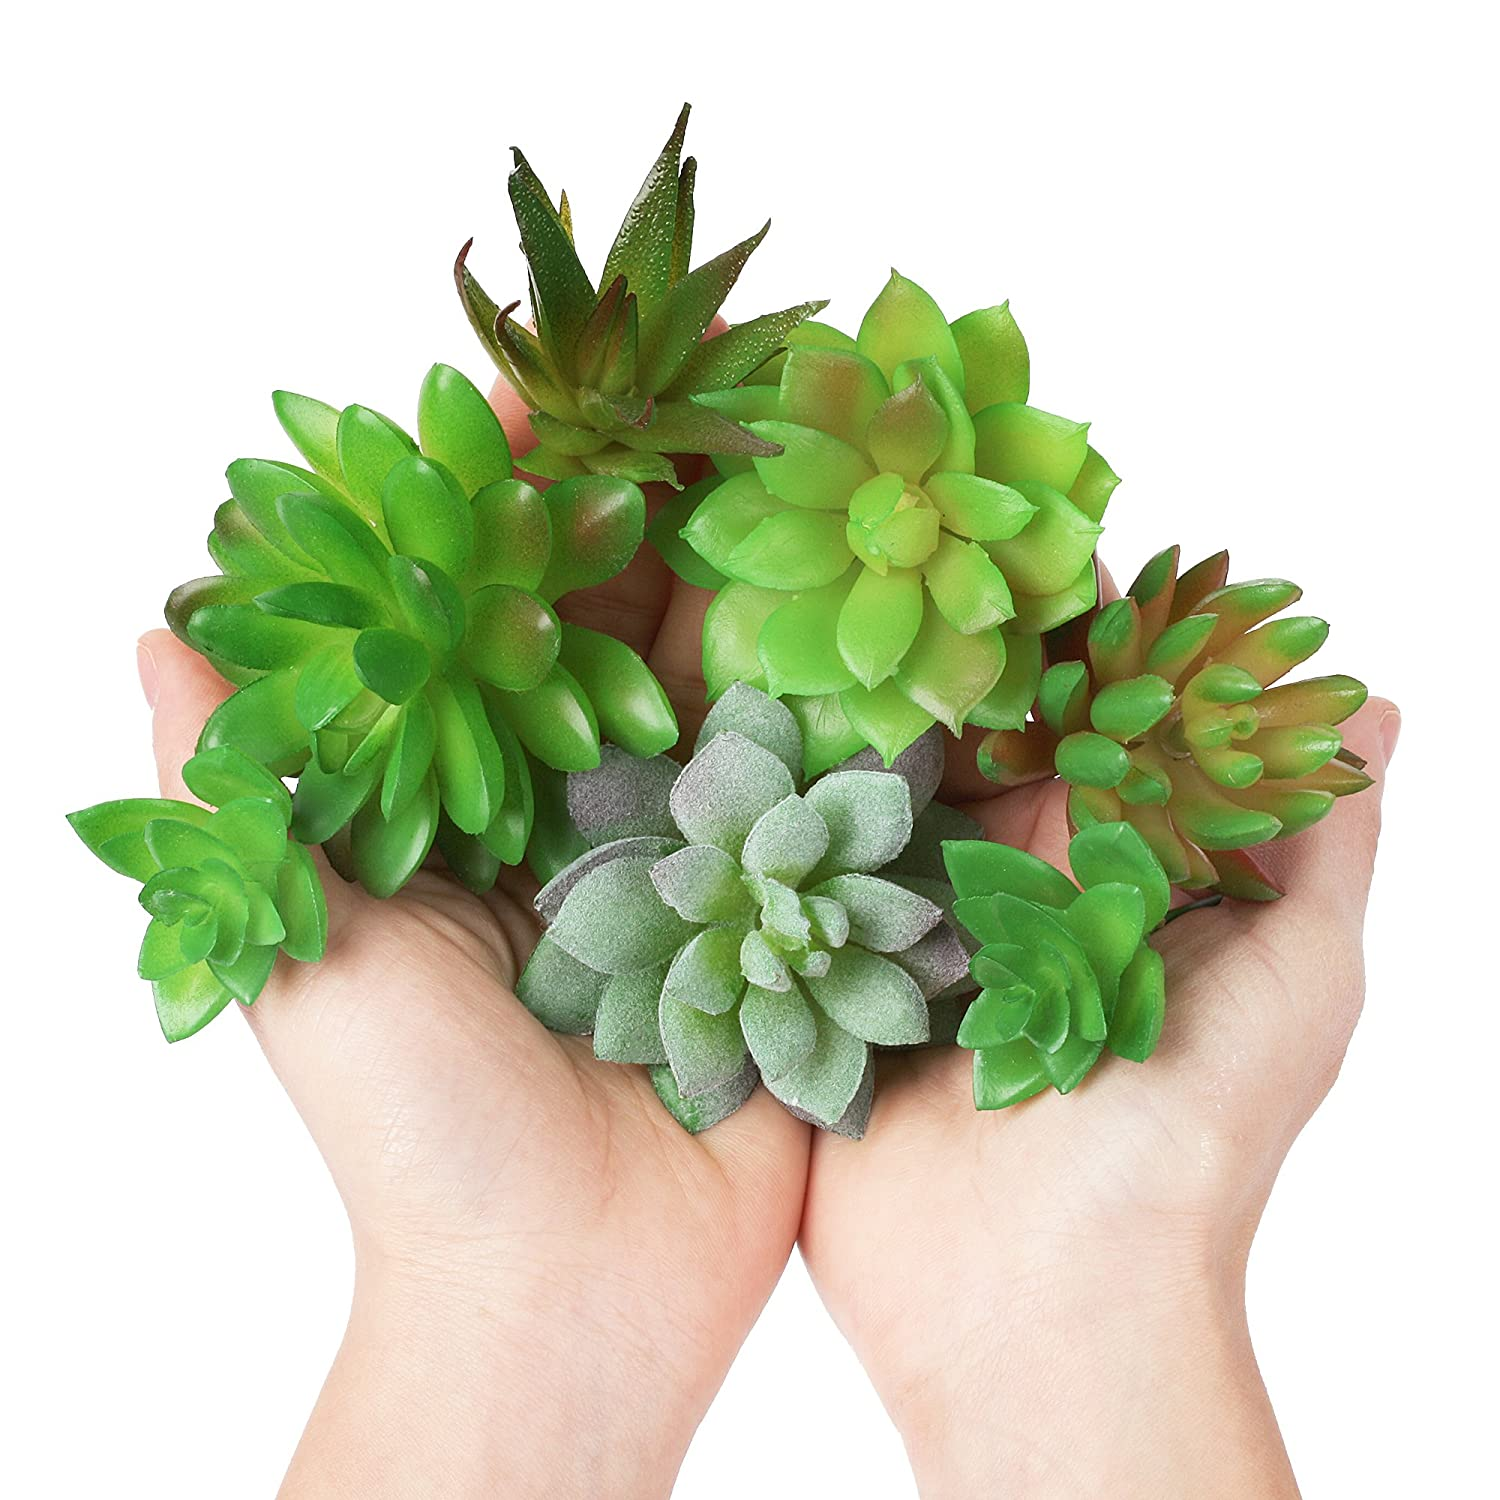 or as Gifts HiperSpeed Party CayTre Fake Artificial Succulents Plant 7-Pc Bulk Faux Succulent Unpotted Picks Plants for Home Decor- Realistic Decorations for Office Table Terrarium